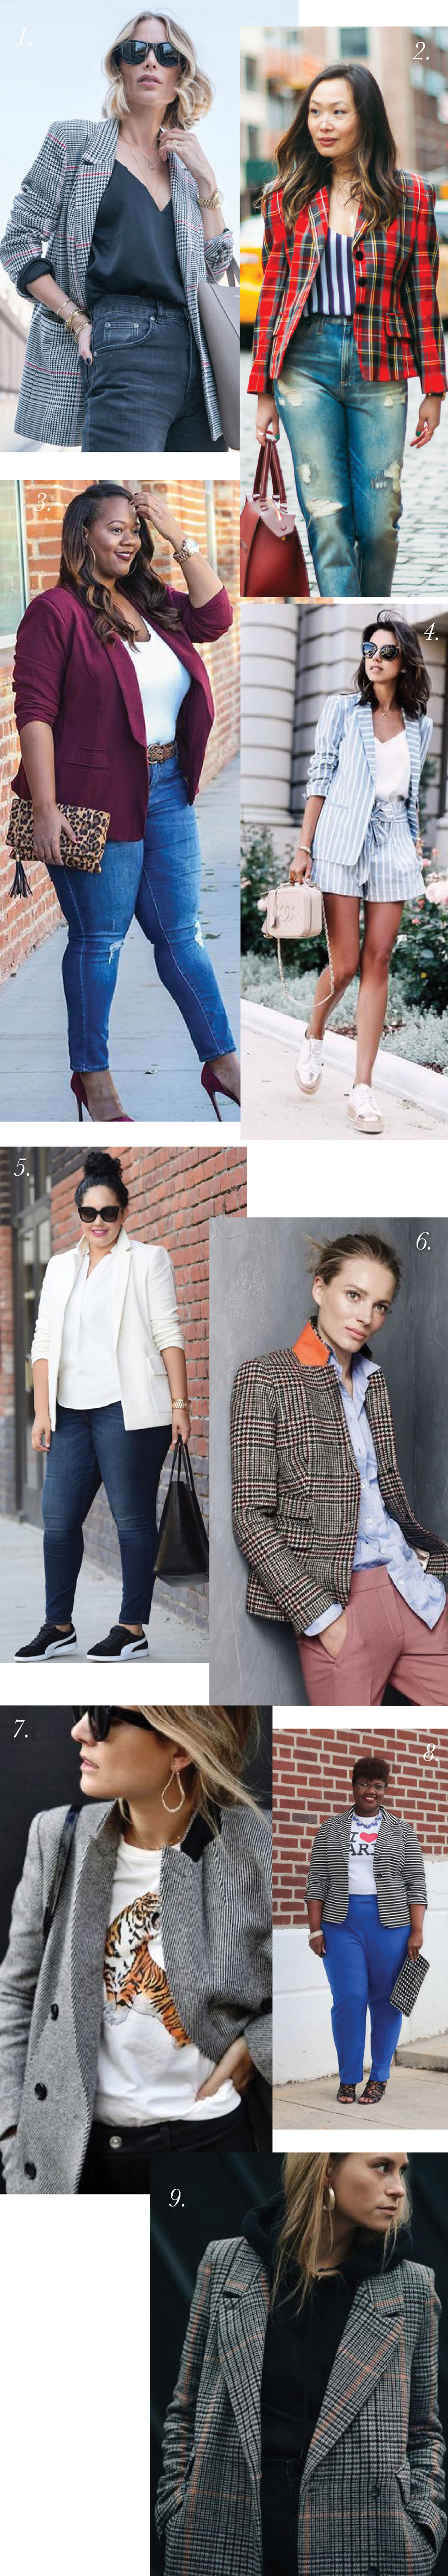 How to Style a Casual Blazer // Blazer outfits ideas for Jasika Blazer from Closet Case Patterns